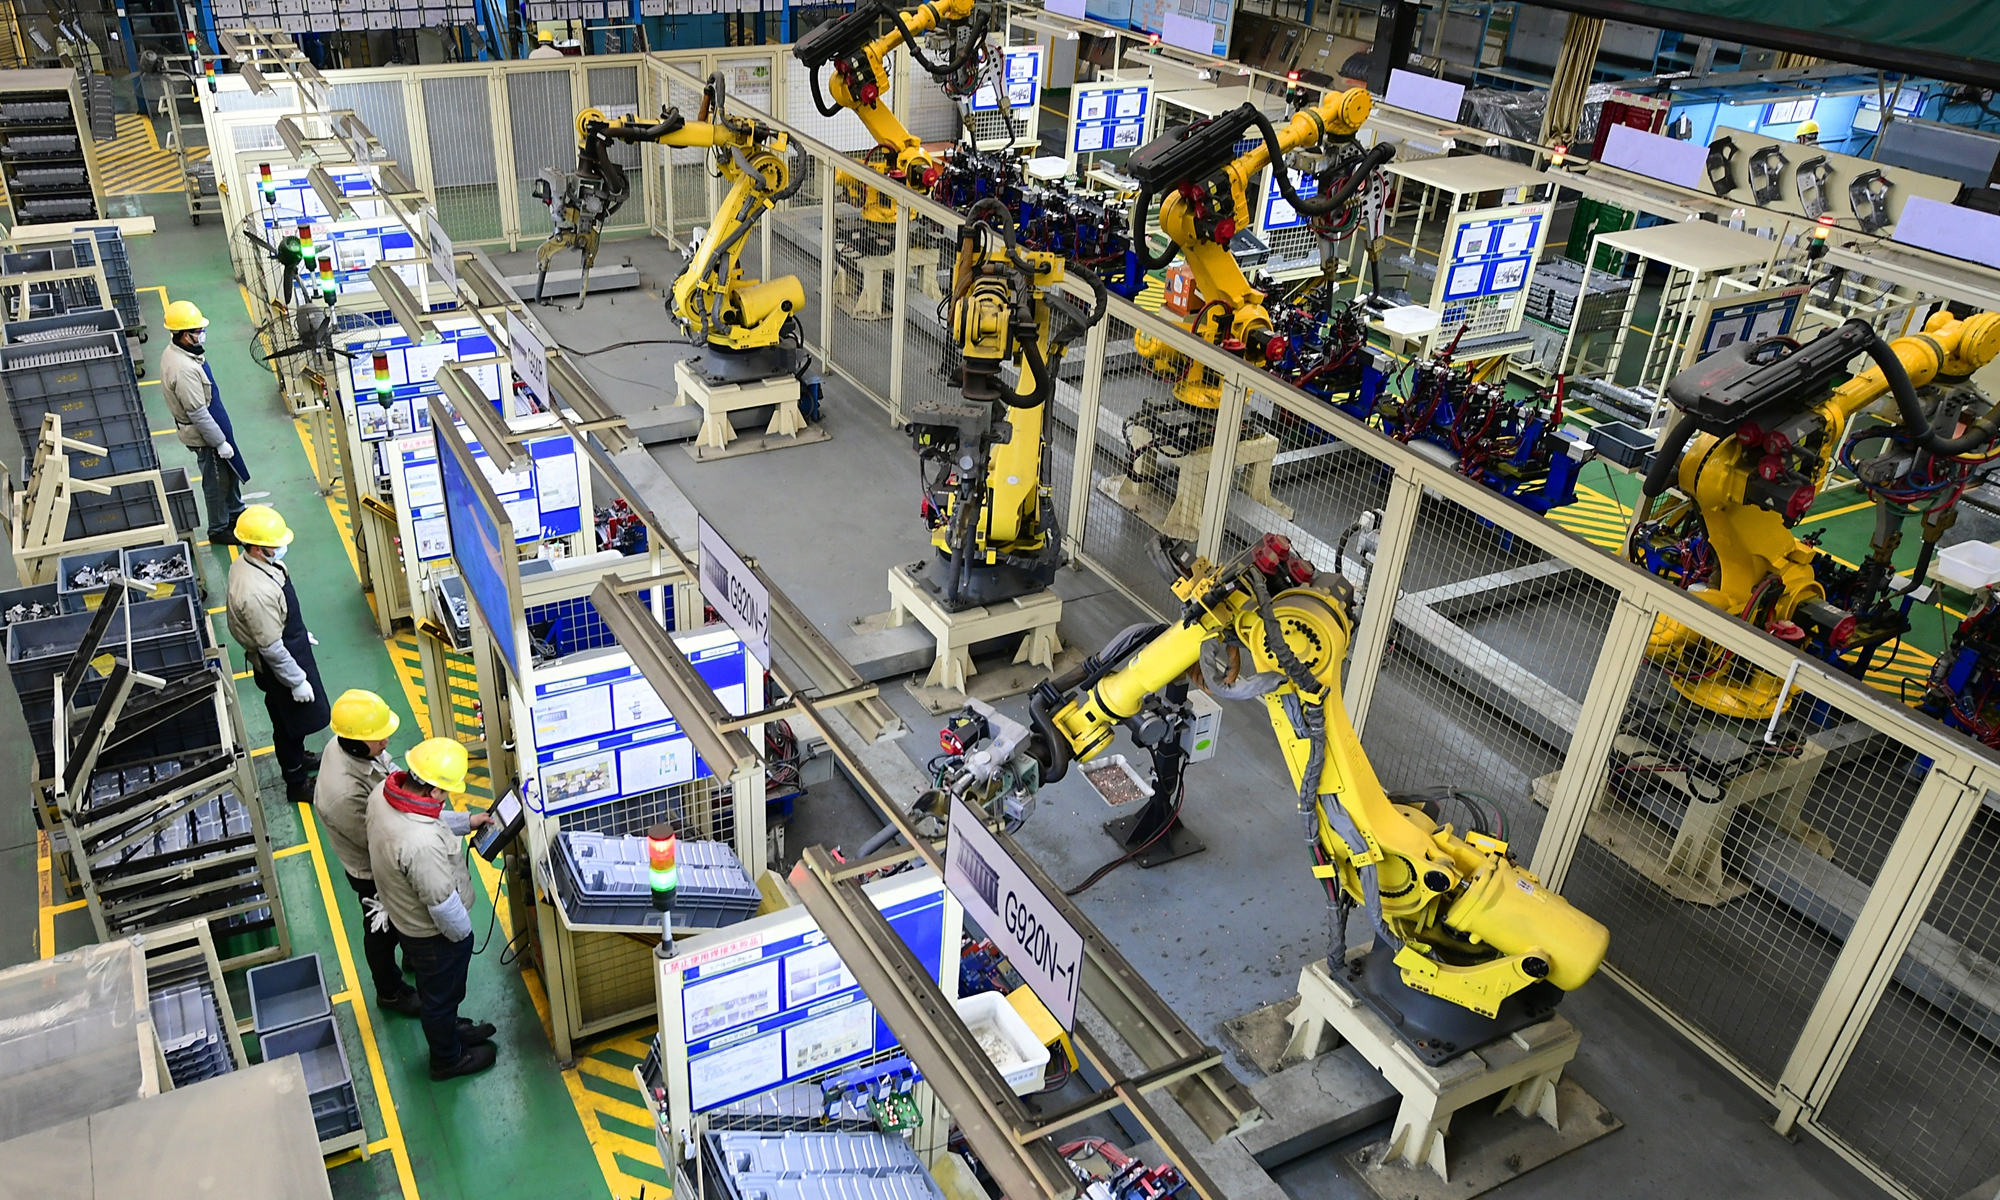 Workers operate industrial robotic arms in an auto parts factory in Taicang, East China's Jiangsu Province on Thursday. The auto parts sector has experienced fast growth in the city, as the number of auto parts companies reached more than 100 in recent years. Photo: IC